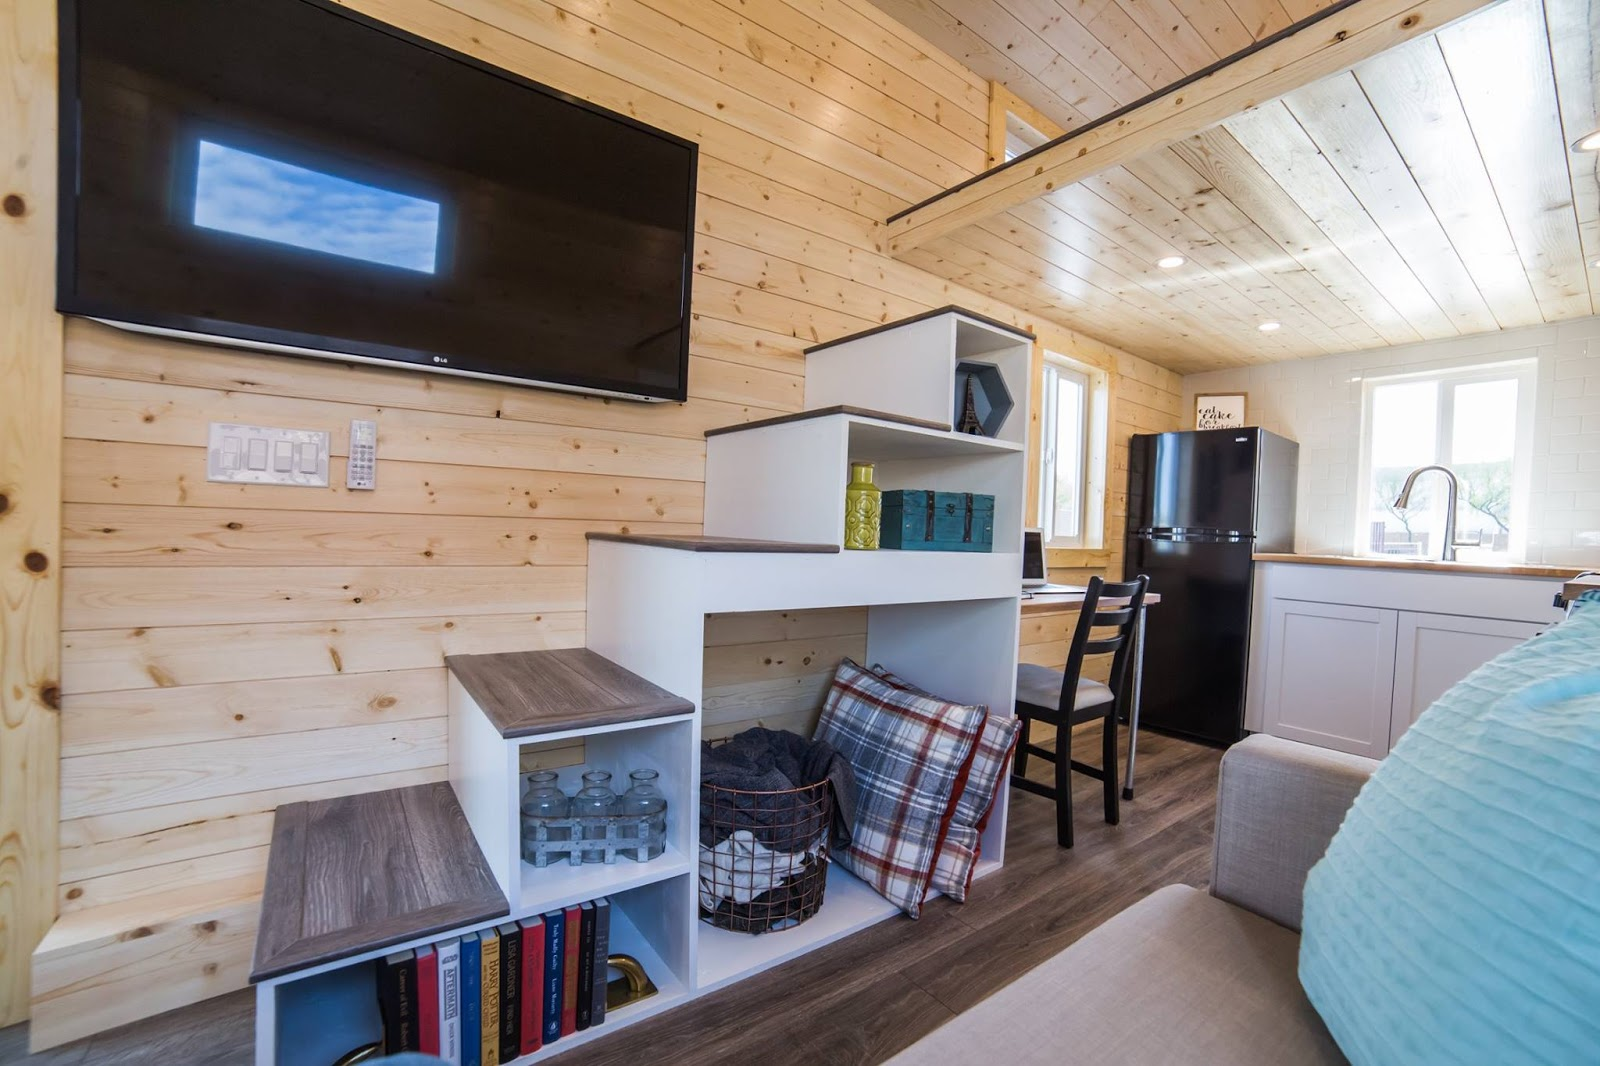 Tiny house town the mansion elite 350 sq ft for 350 sq ft house